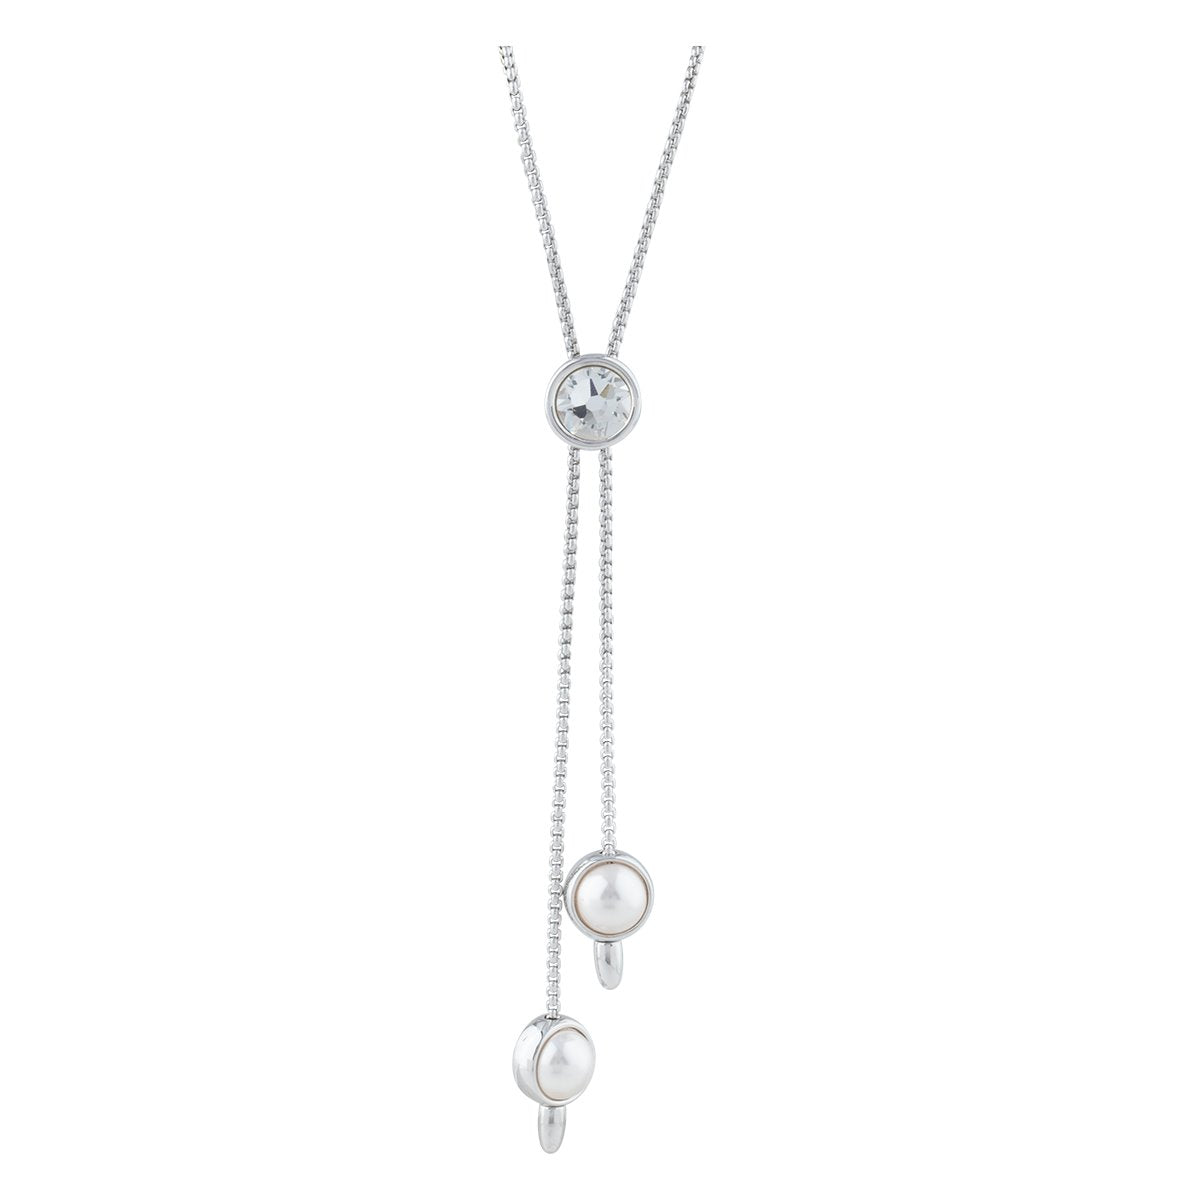 DORIS NECKLACE SLIDER SILVER CRYSTAL